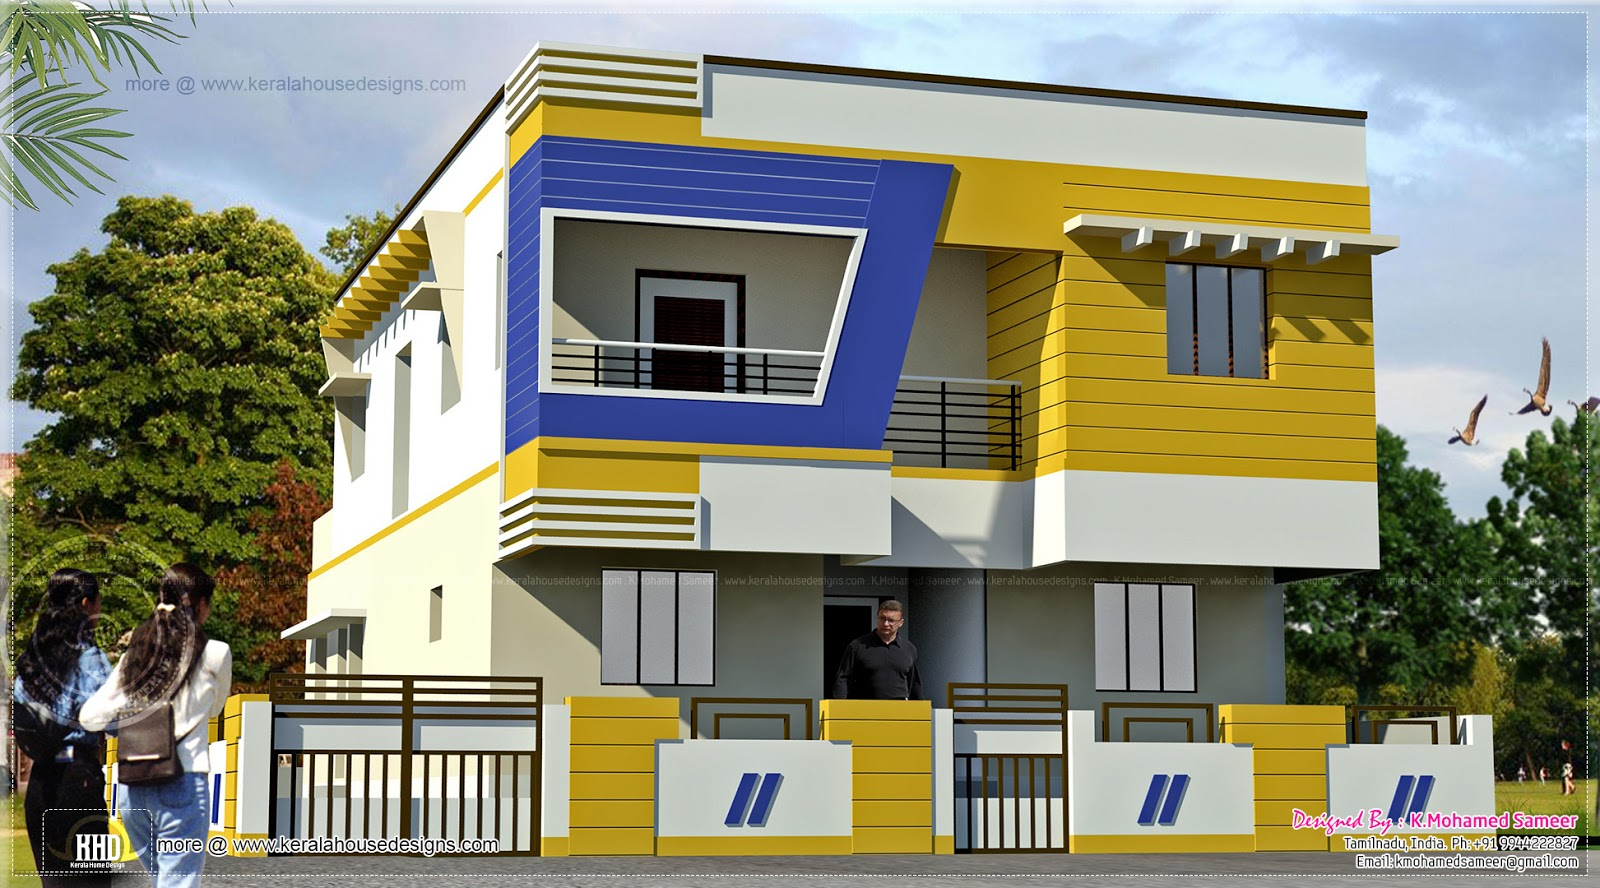 Home design plans in tamilnadu 2017 2018 best cars reviews for Home designs in tamilnadu